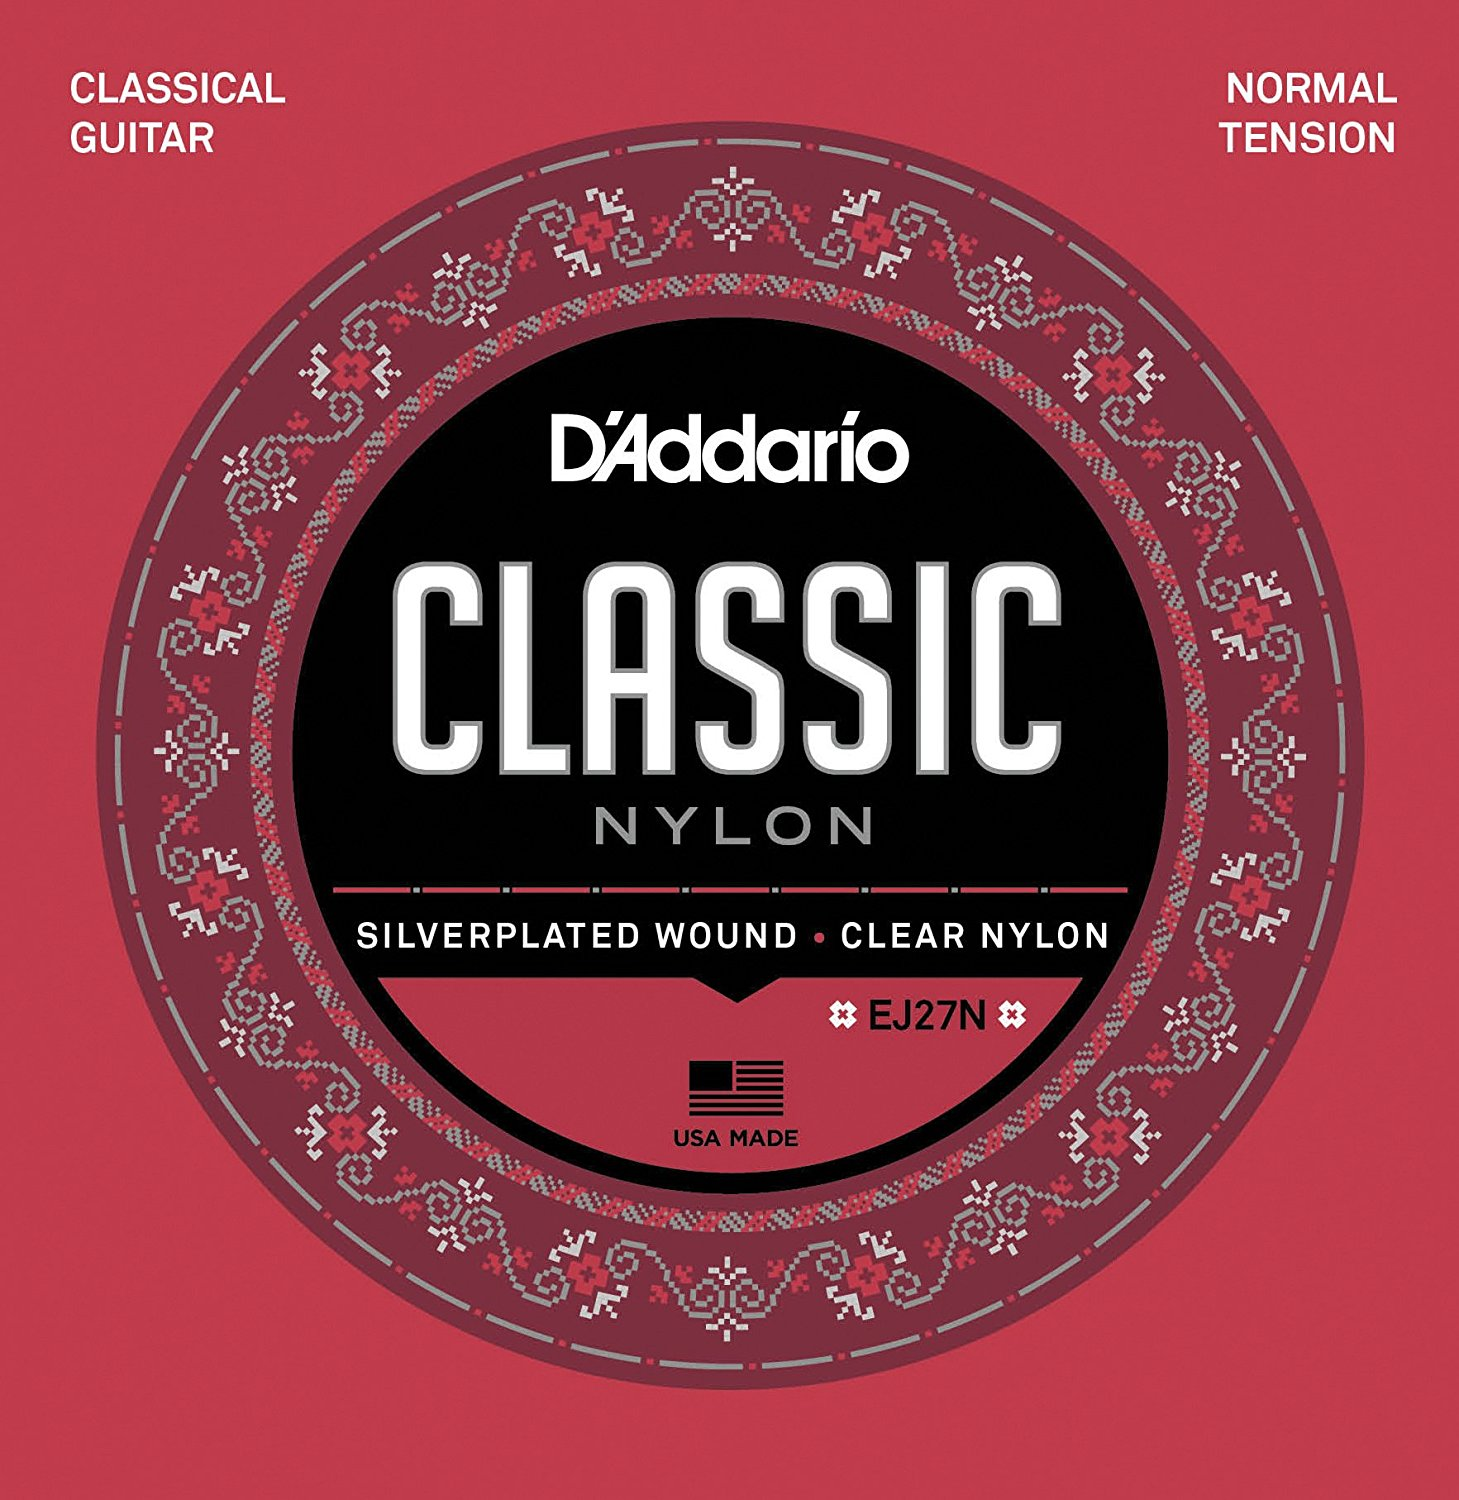 D'Addario Classical Nylon Strings EJ27N